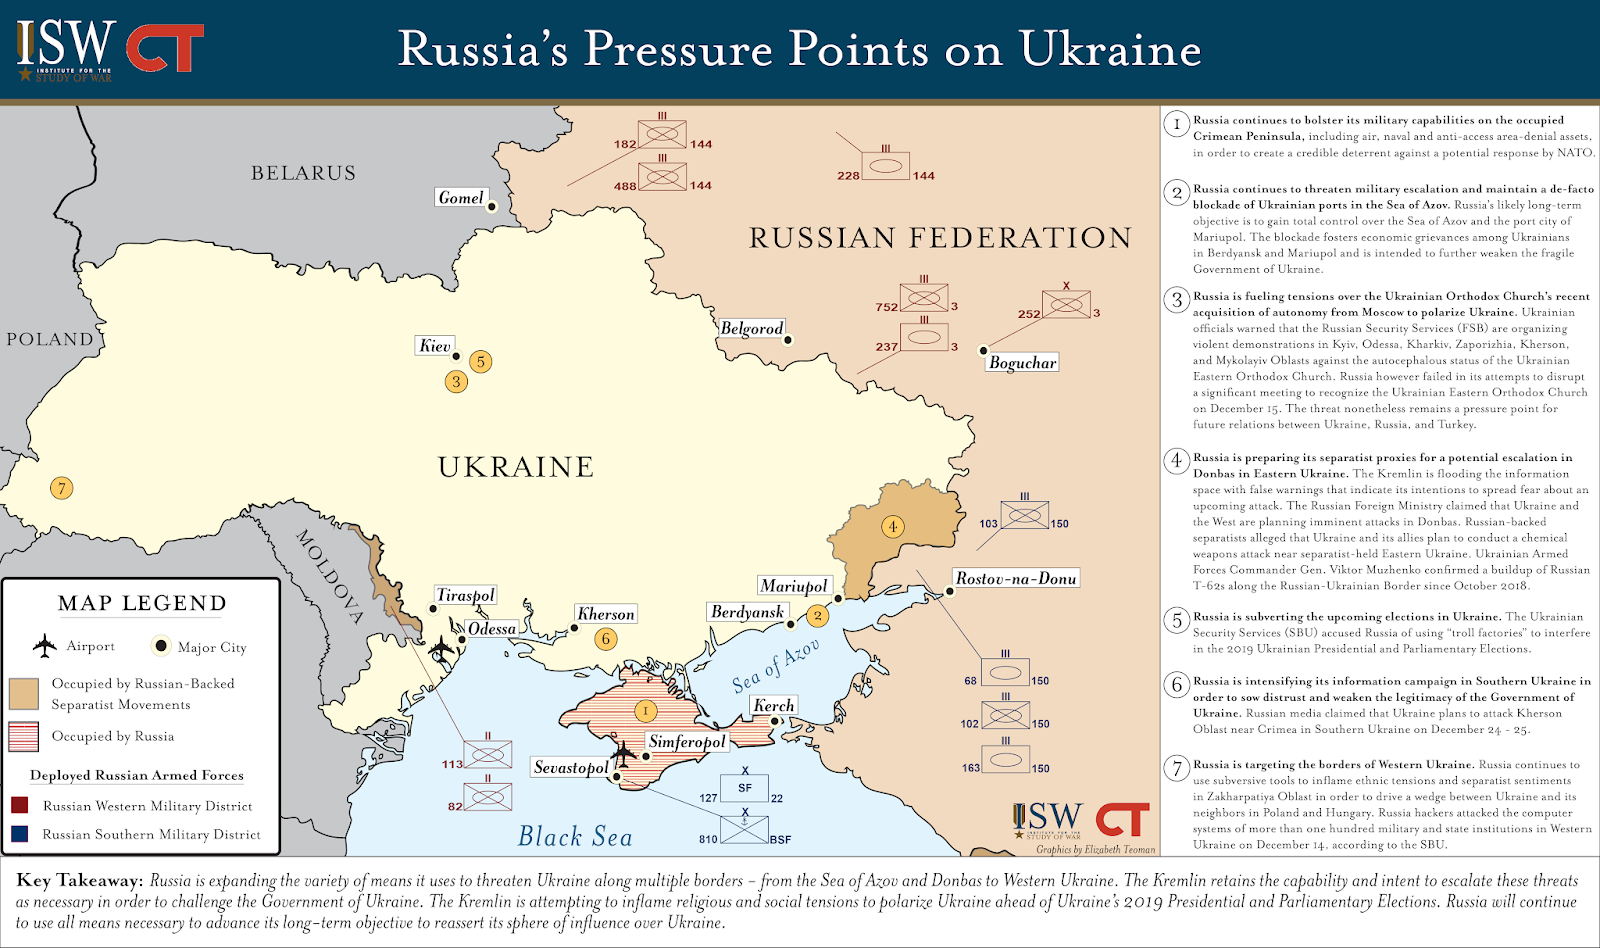 ISW Blog: Russia's Pressure Points on Ukraine on ukraine historical map, ukraine ethnic division, ukraine map crimea, odessa ukraine map, ukraine population density map, ukraine map interactive, 2014 ukraine map, ukraine demographic map, ukraine world map, ukraine 1914 map, ukraine regions map, ukraine west russia, ukraine flag, ukraine language map, eastern europe ukraine russia map, ukraine protests, ukraine division map, conflict in ukraine map, kharkov ukraine map,